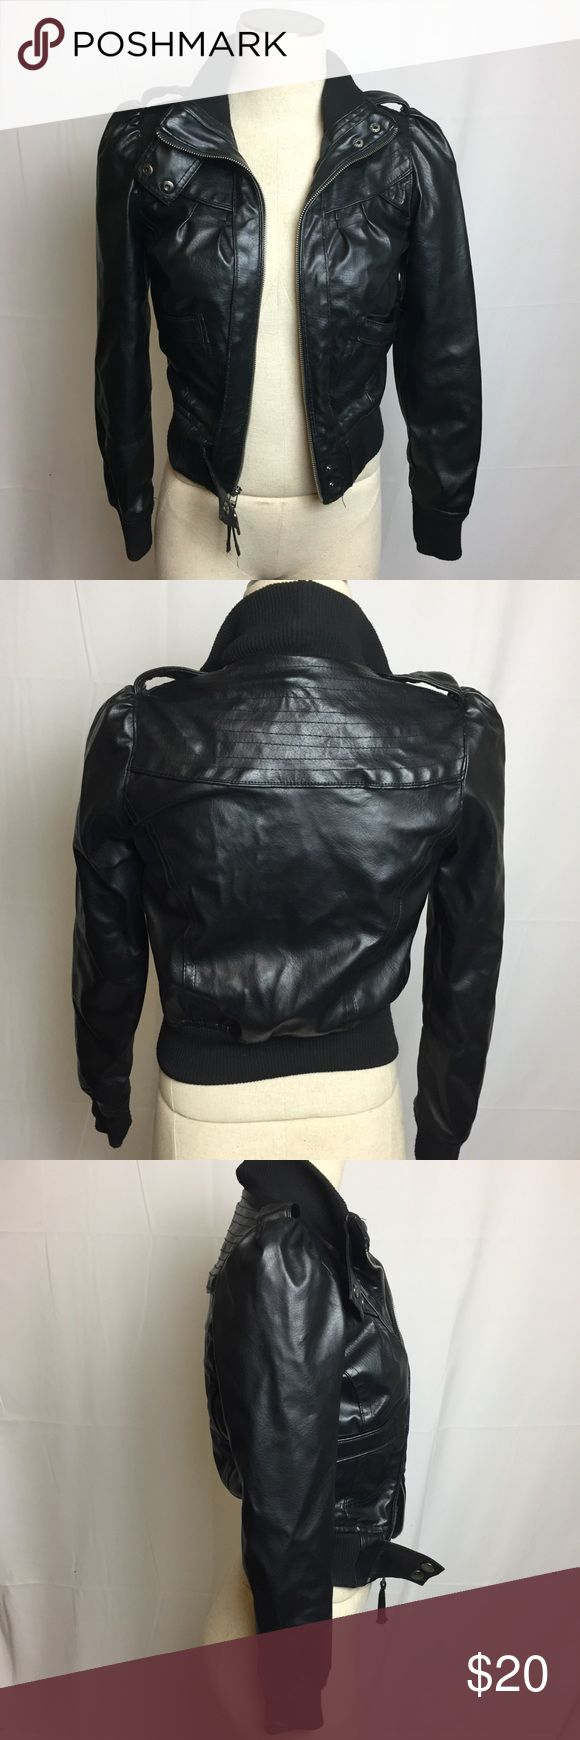 Miley Cyrus x Max Azria bomber jacket Miley Cyrus Max Azria Women's Faux Leather bomber Jacket see pictures for details and condition SIZE XS Miley Cyrus & Max Azria Jackets & Coats